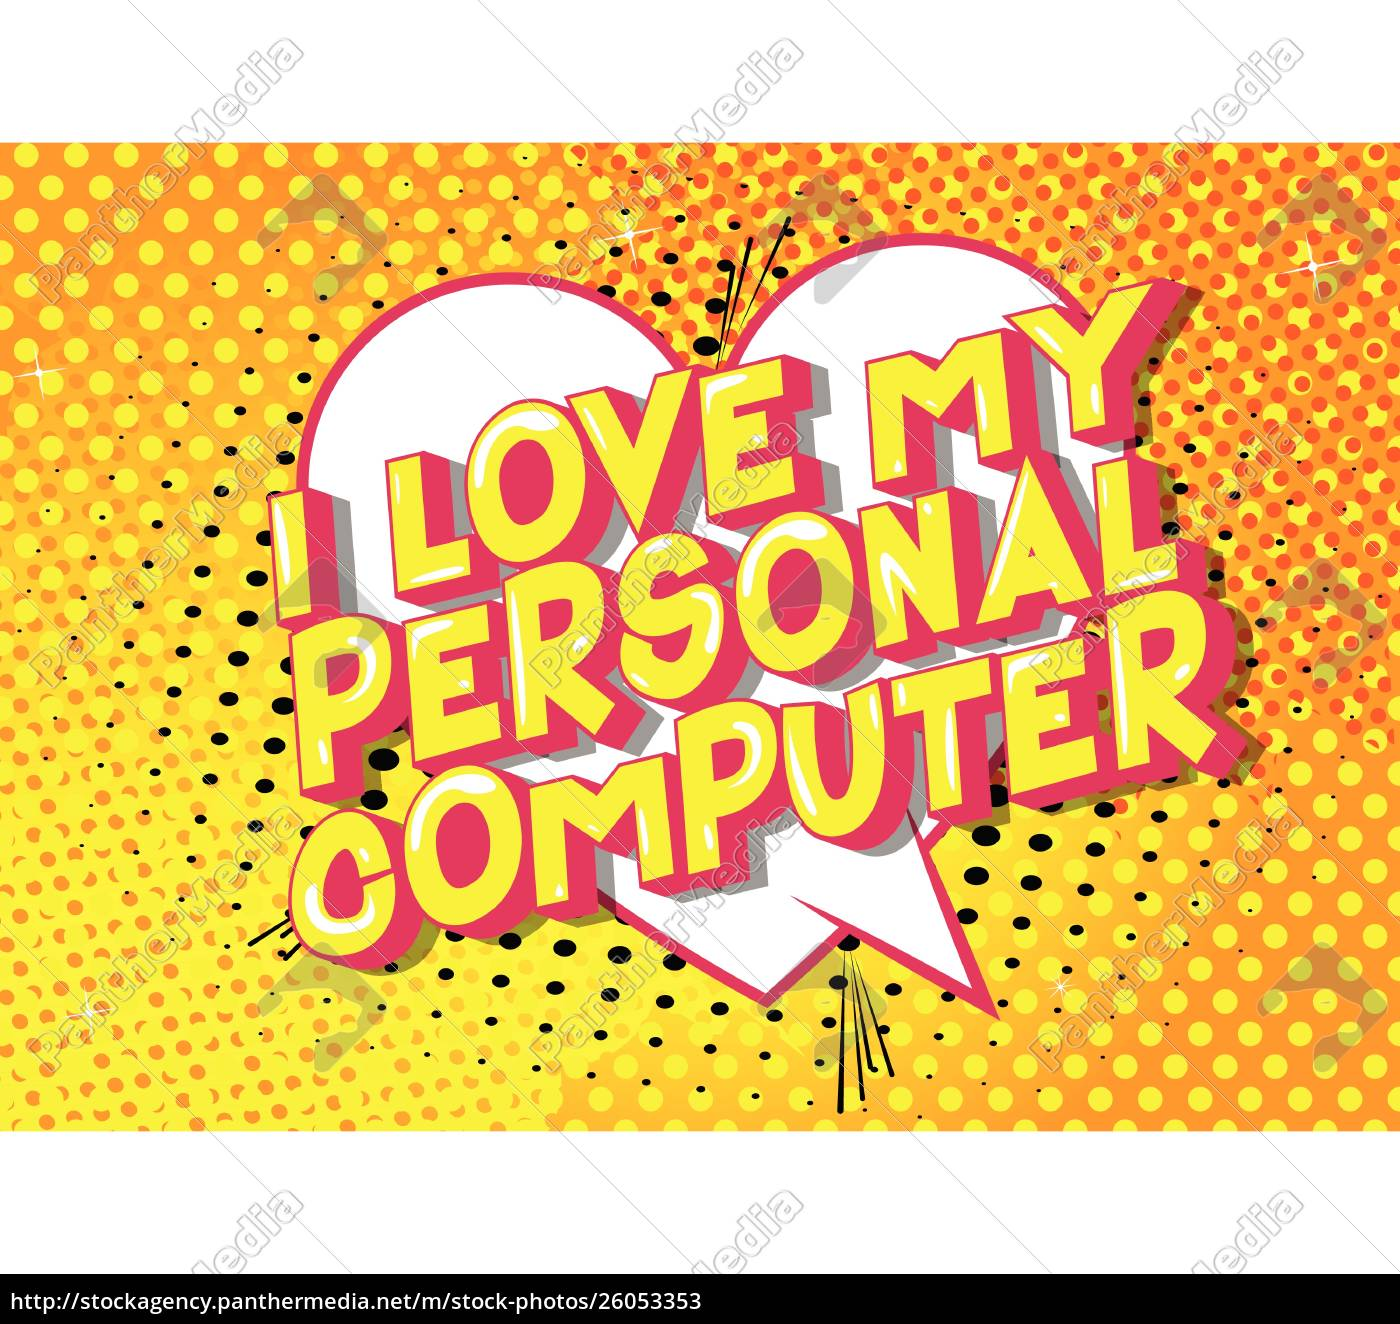 i, love, my, personal, computer, - - 26053353